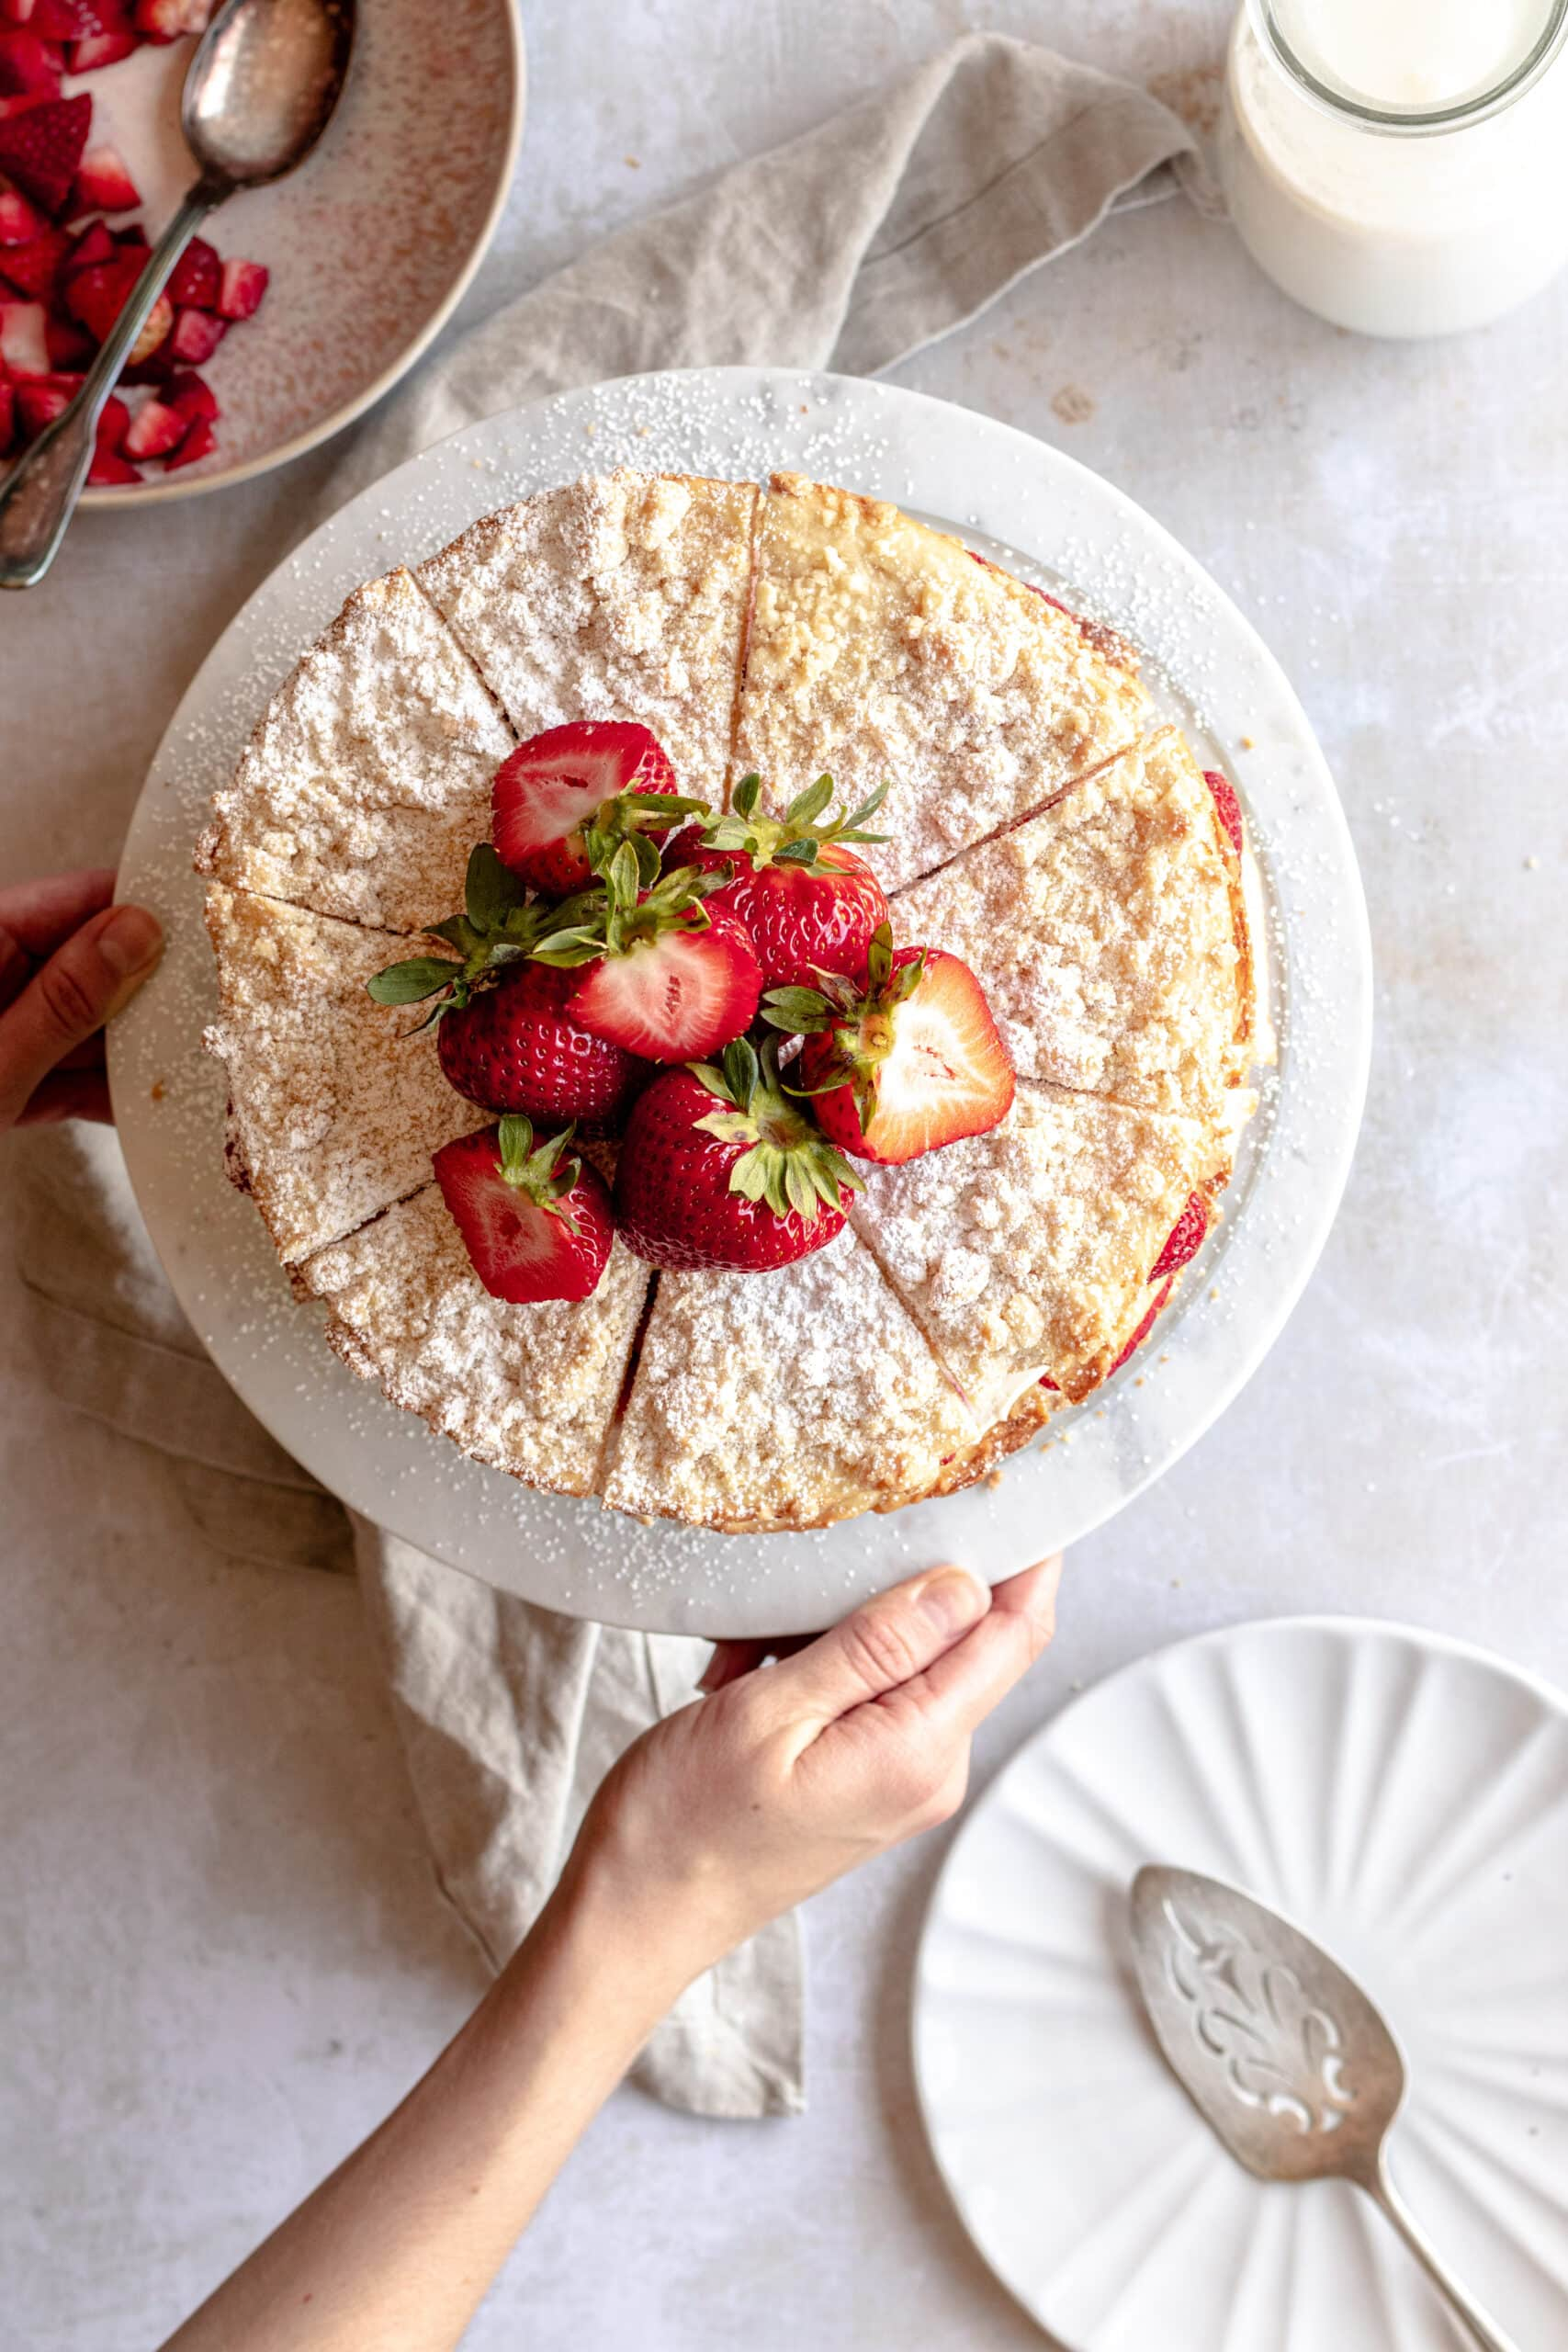 Overhead image of the Strawberry Blättertorte with hands reaching into the scene setting the cake stand on the surface.